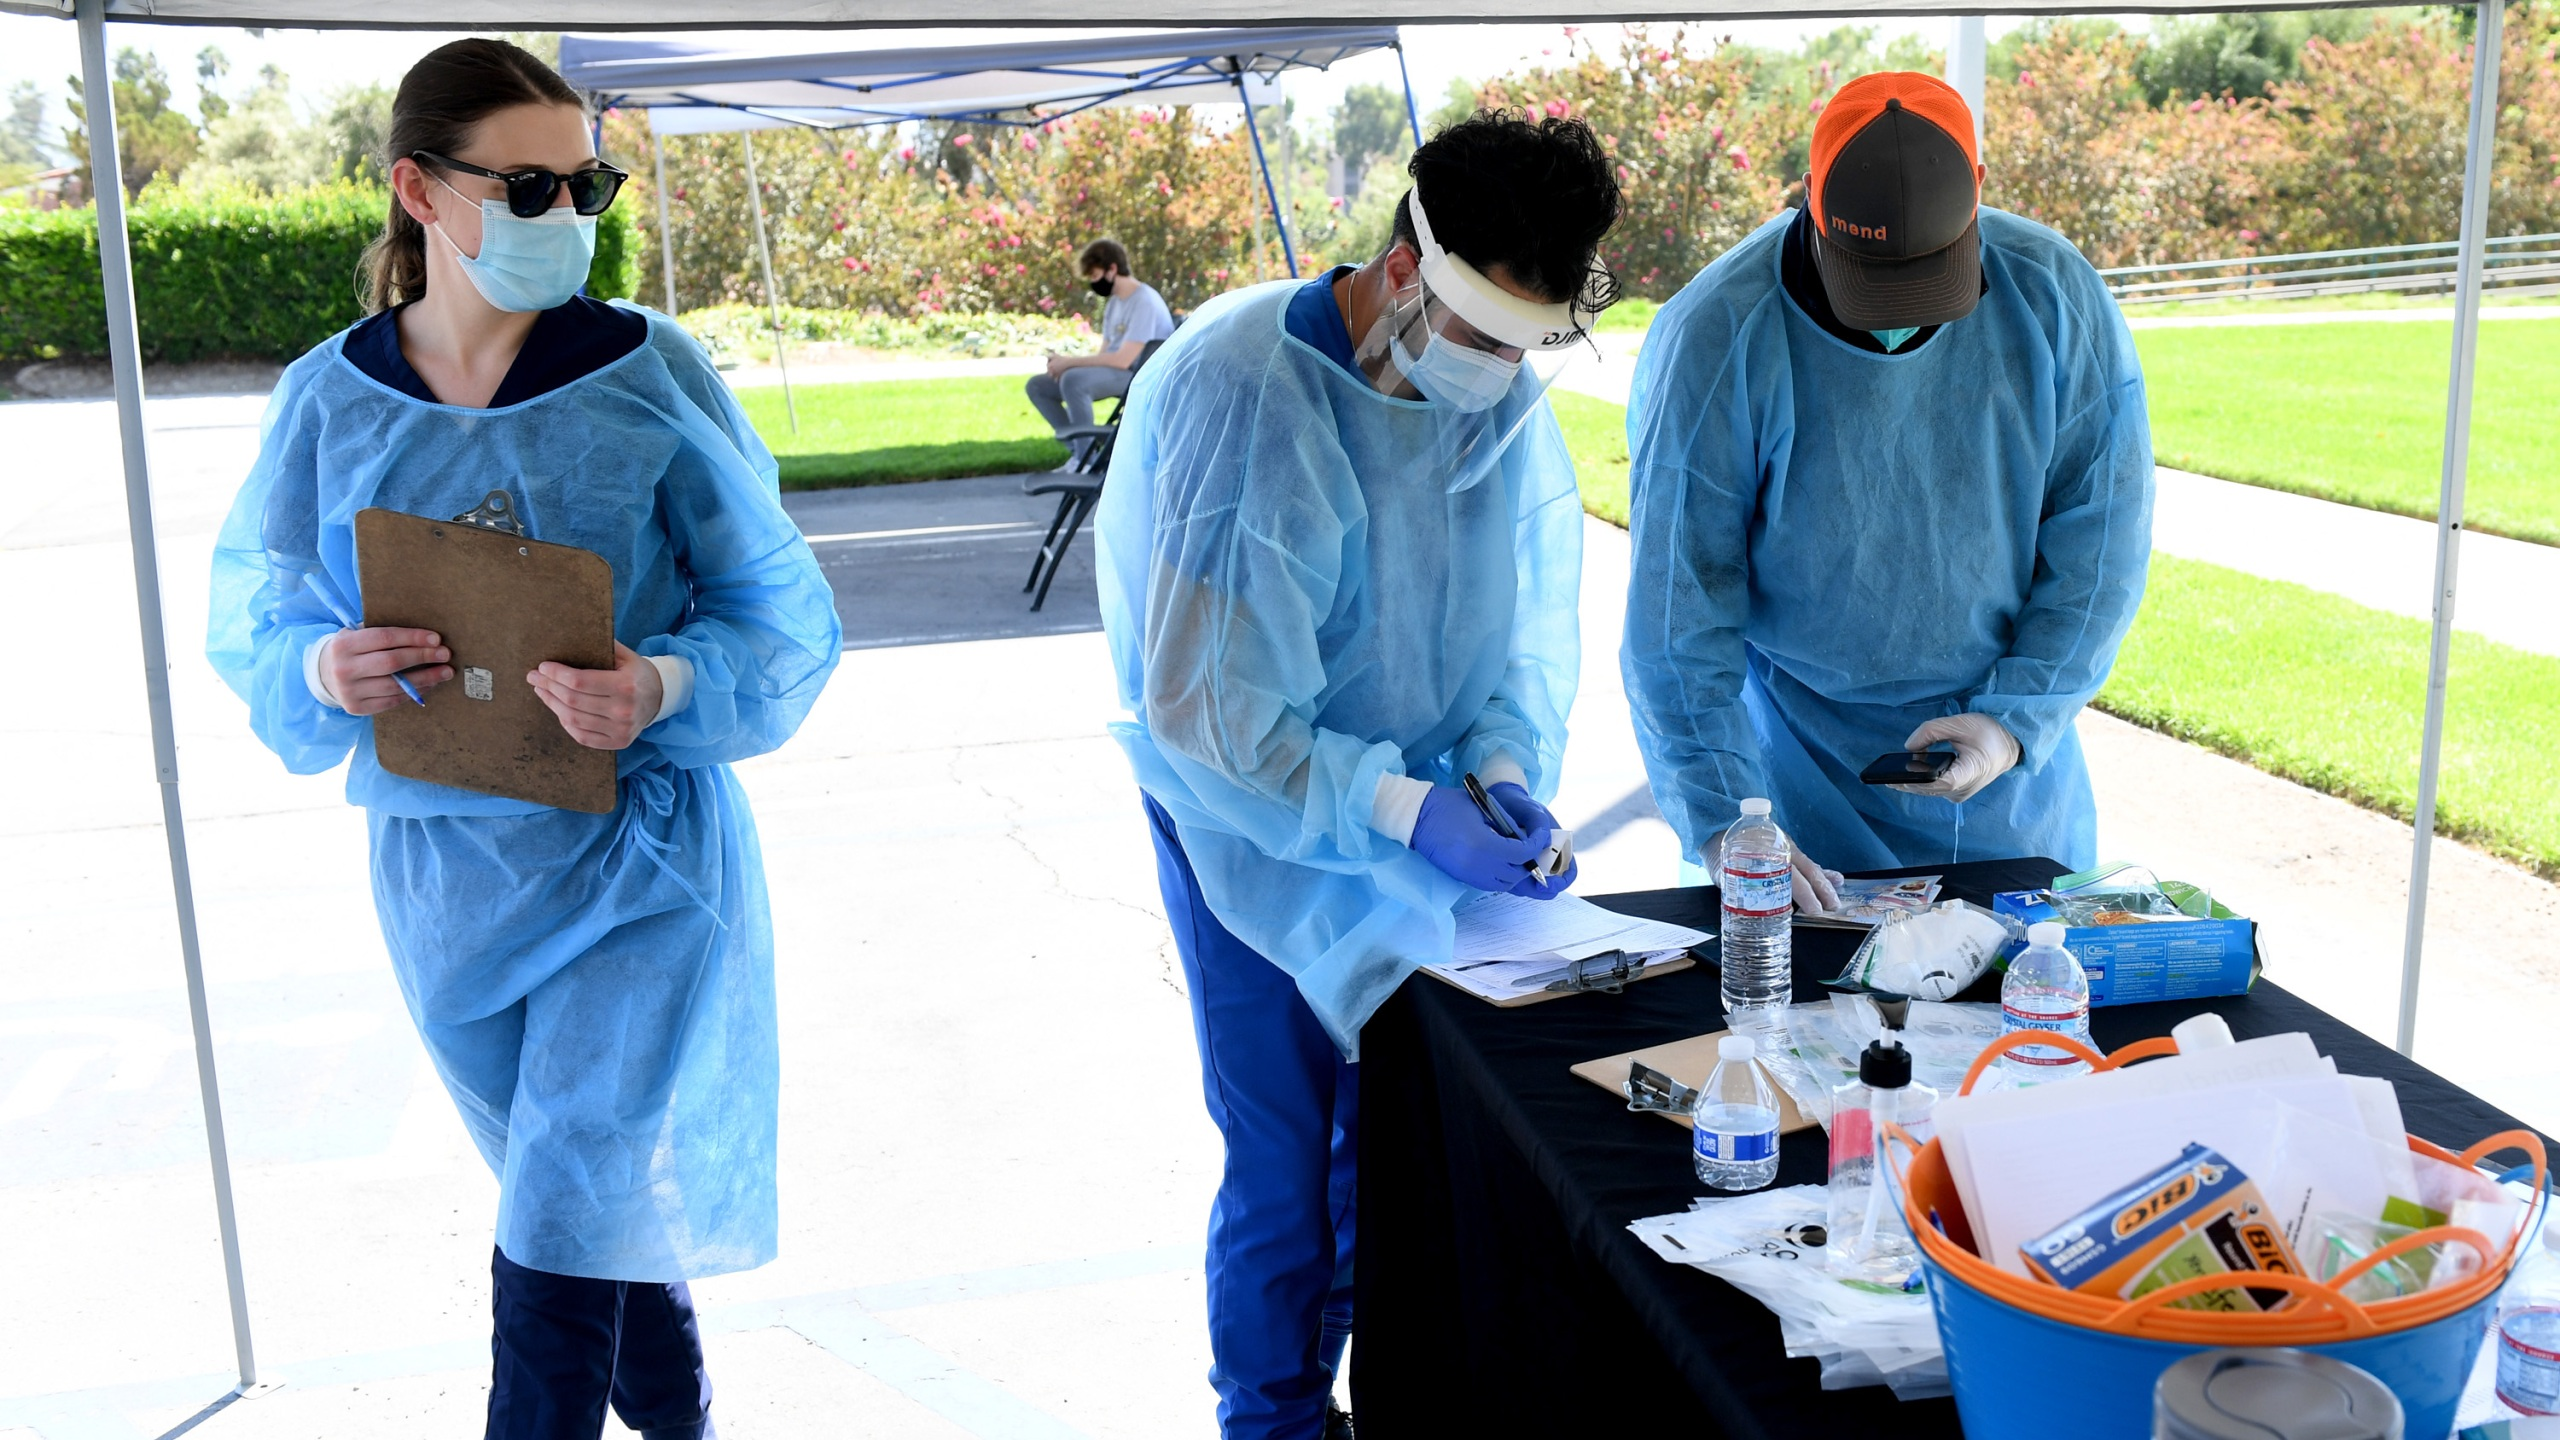 Mend Urgent Care workers wearing personal protective equipment perform drive-up COVID-19 testing for students and faculty on the first day of school at Woodbury University in Burbank on Aug. 24, 2020. (Kevin Winter/Getty Images)